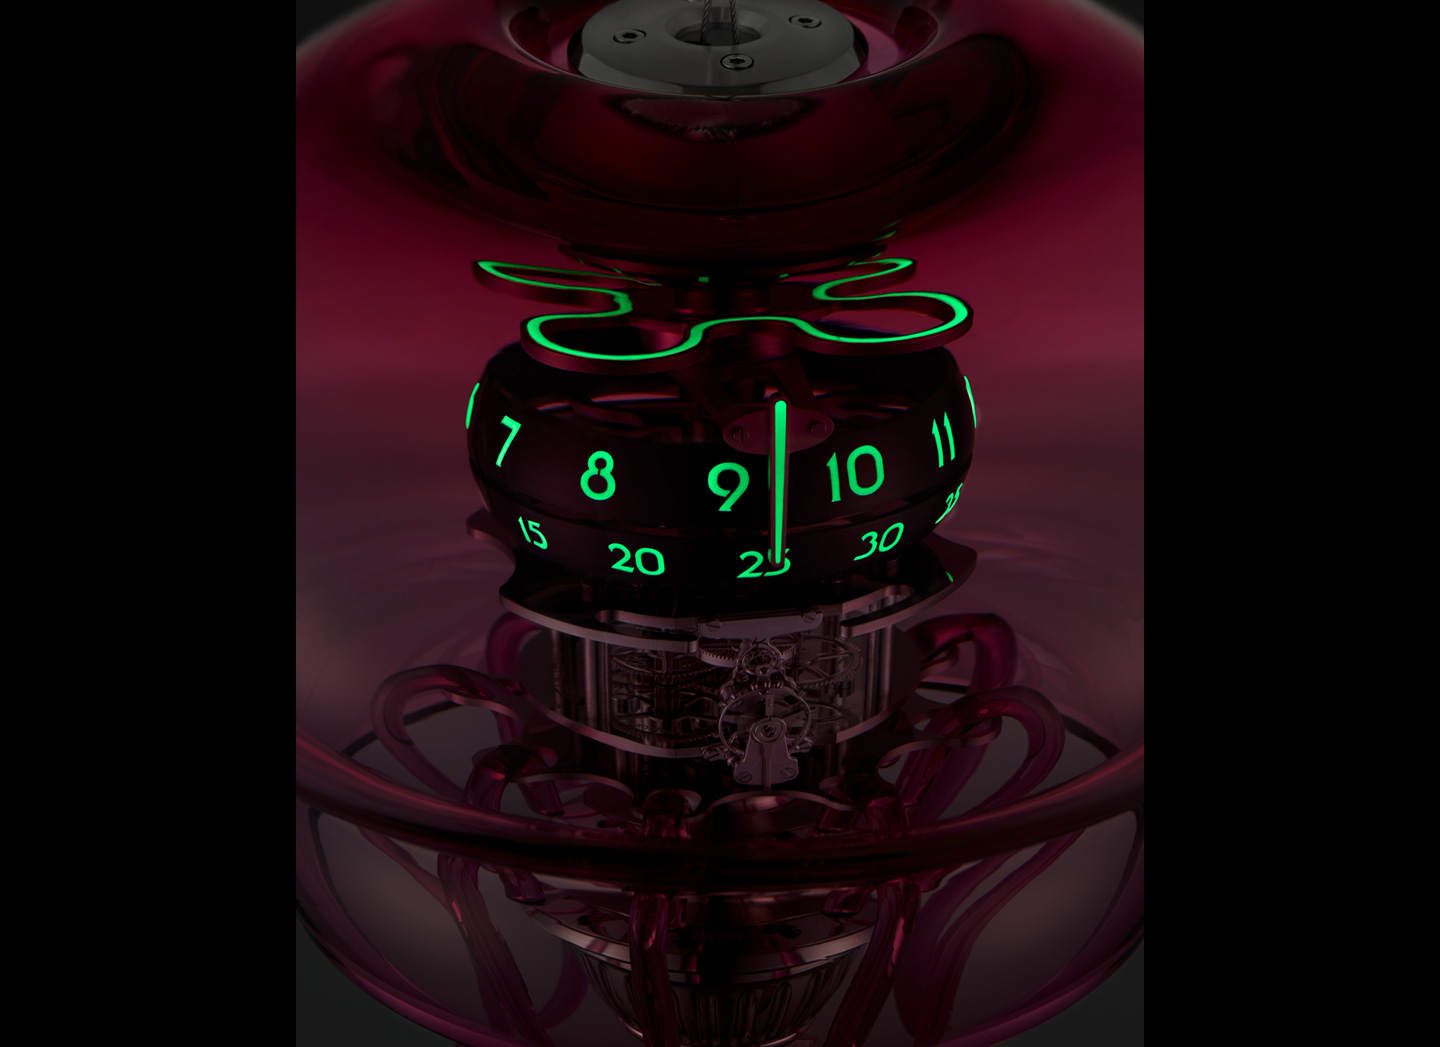 MB&F Medusa Clock made in cooperation with L'Epee